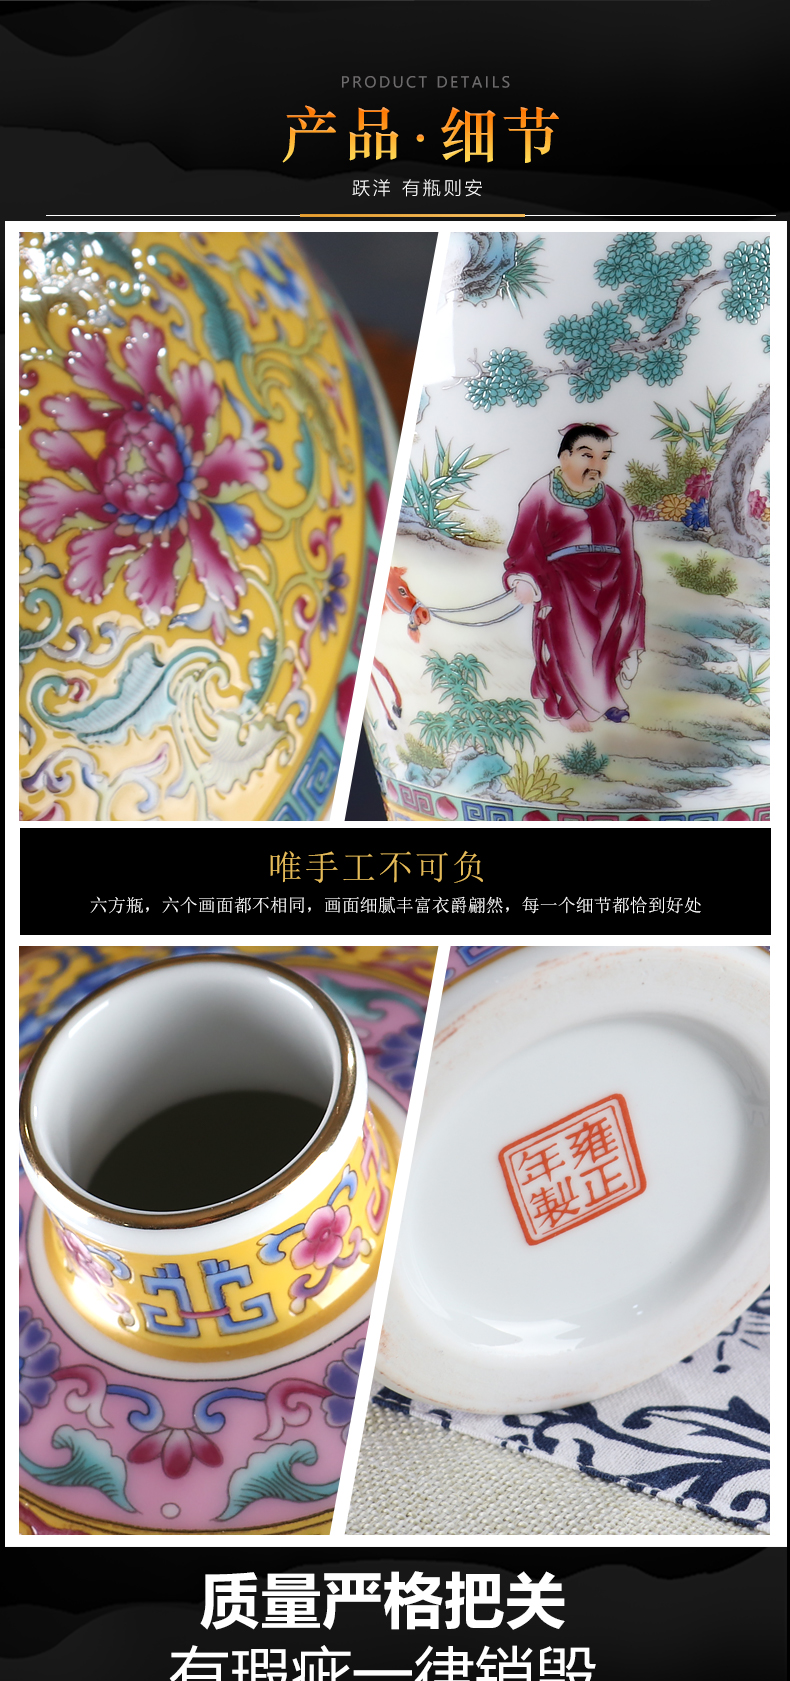 Yongzheng antique Ming and the qing dynasty vase of jingdezhen ceramics furnishing articles office sitting room flower arranging Chinese decorative arts and crafts